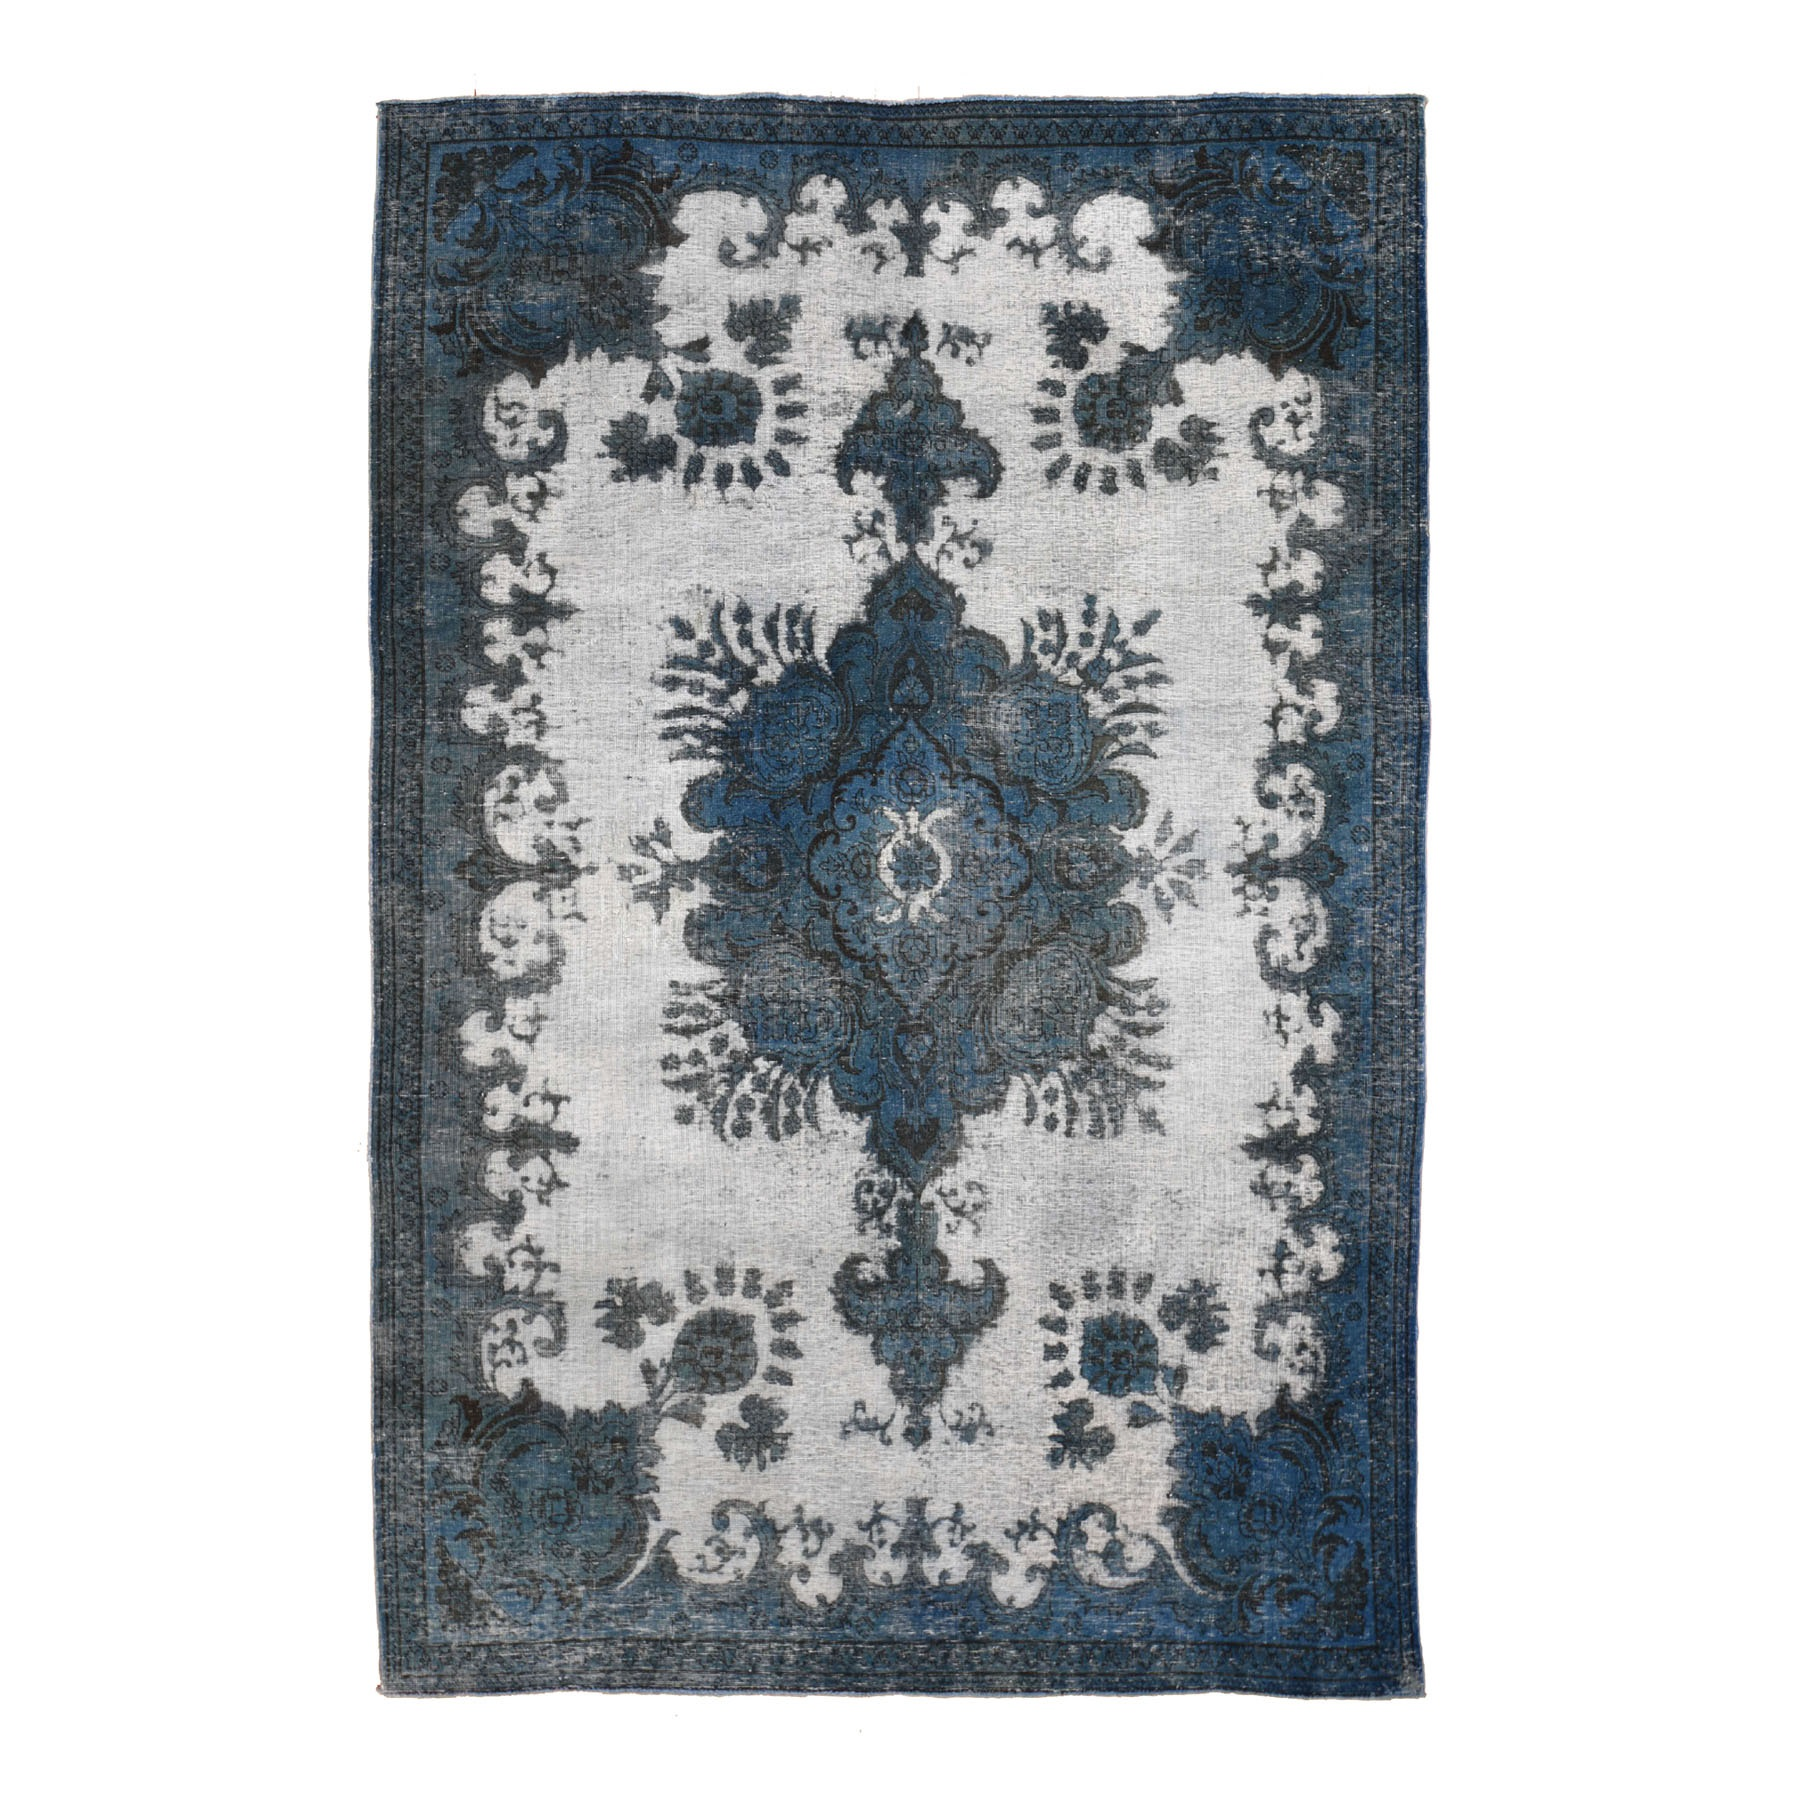 "6'5""X9' Navy Blue Overdyed Hand Knotted Persian Tabriz Barjasta Vintage Oriental Rug moad8de7"